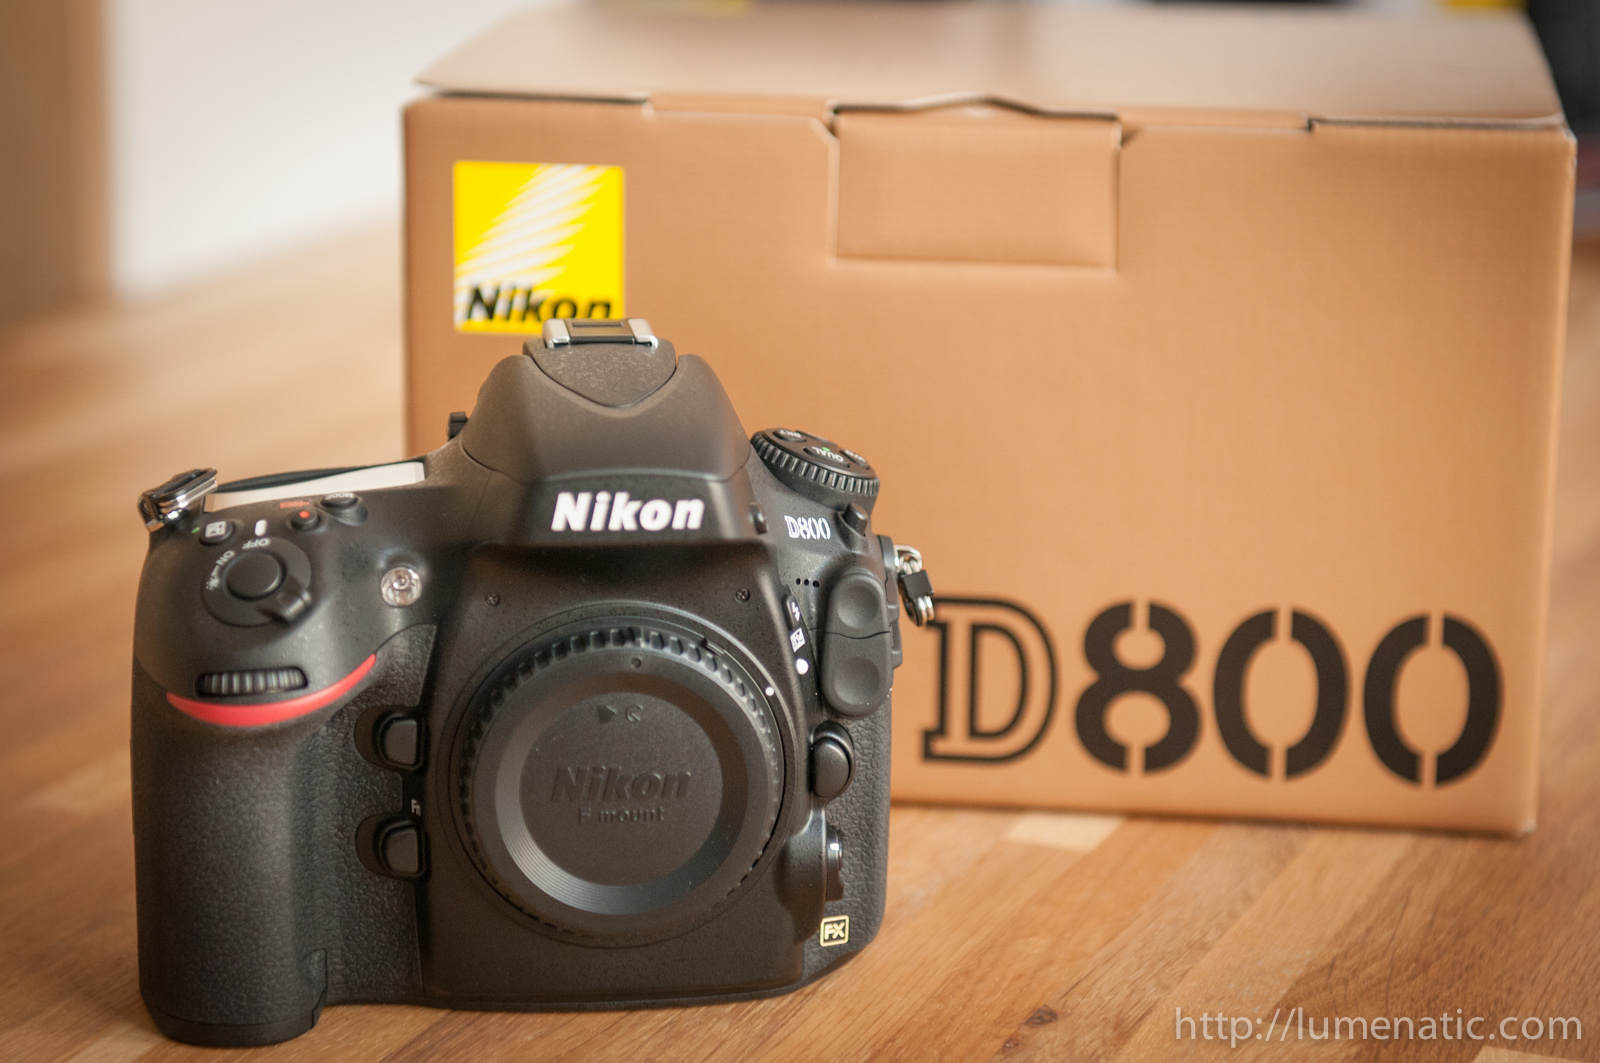 D800 CLS issue feedback from Nikon Germany – it's a hardware AND software issue (updated)